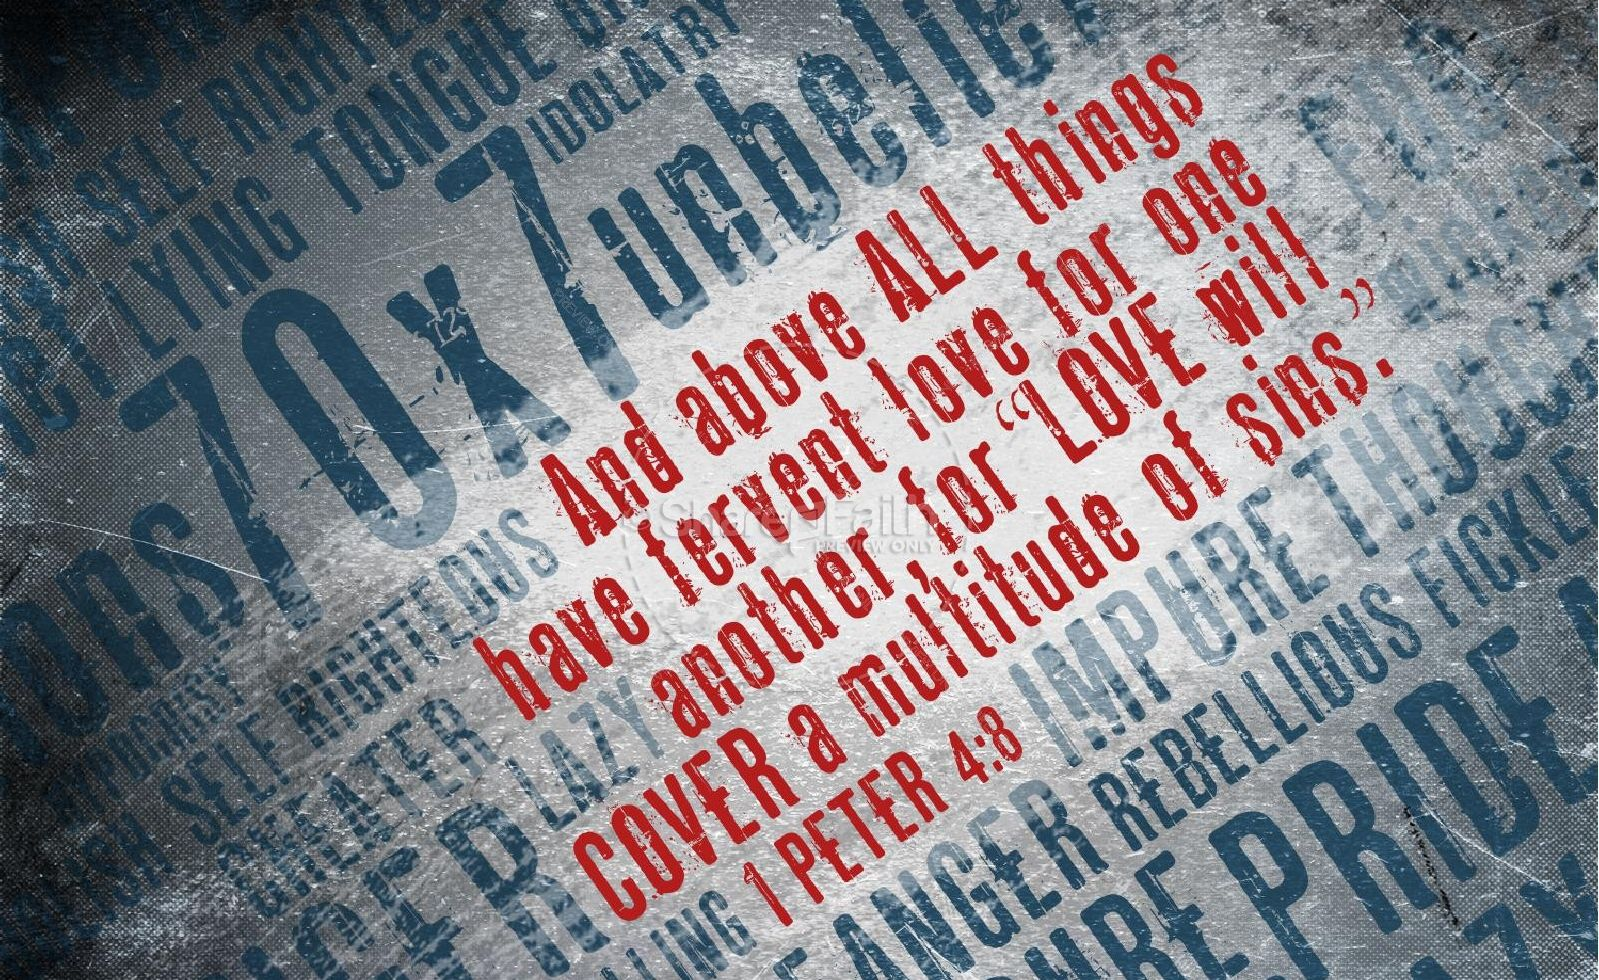 1 Peter 4:7-11 - End-Time Ethics | Jesus: The Way, The Truth, & The Life